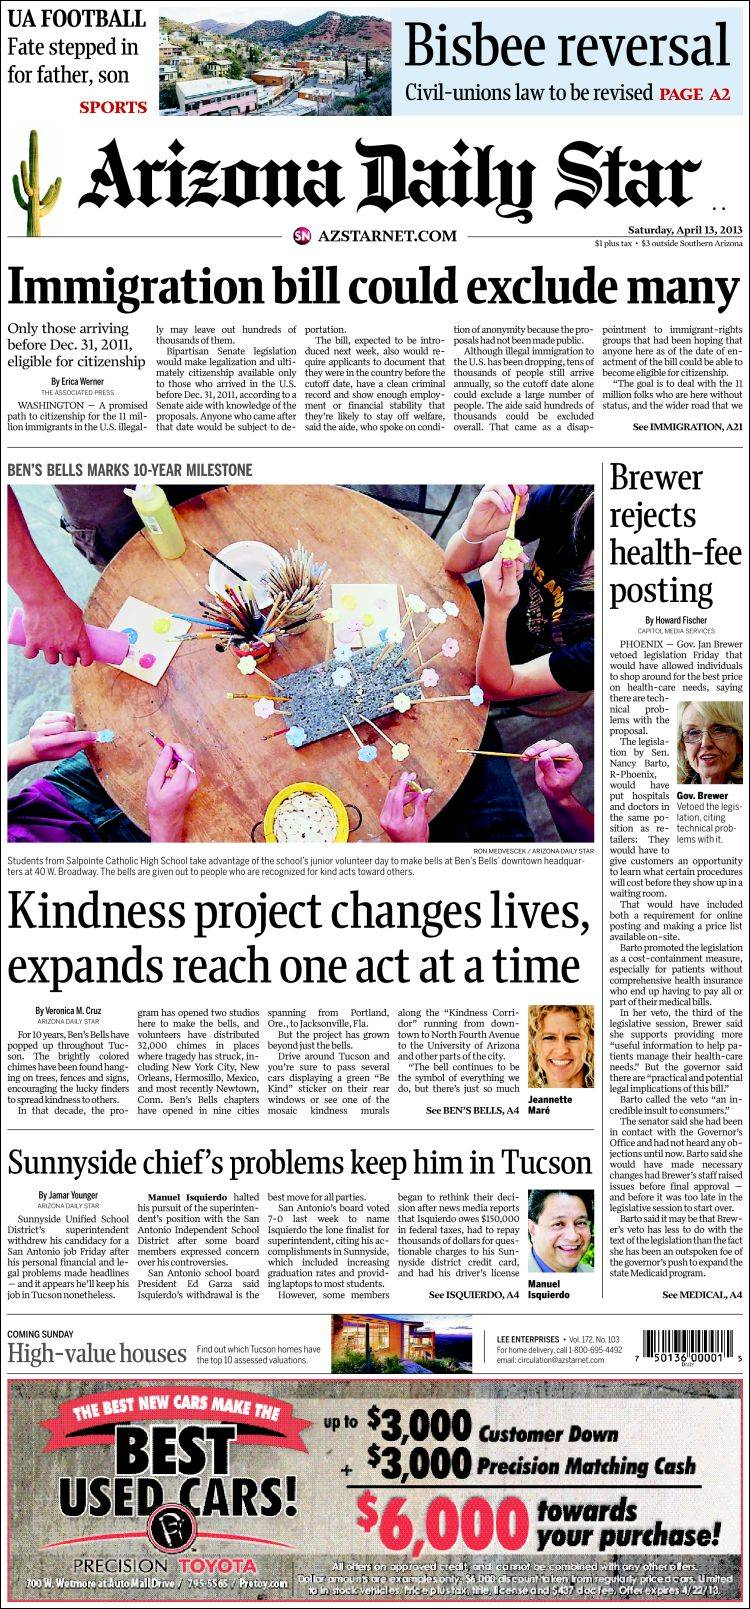 Arizona_daily_star-2013-04-13